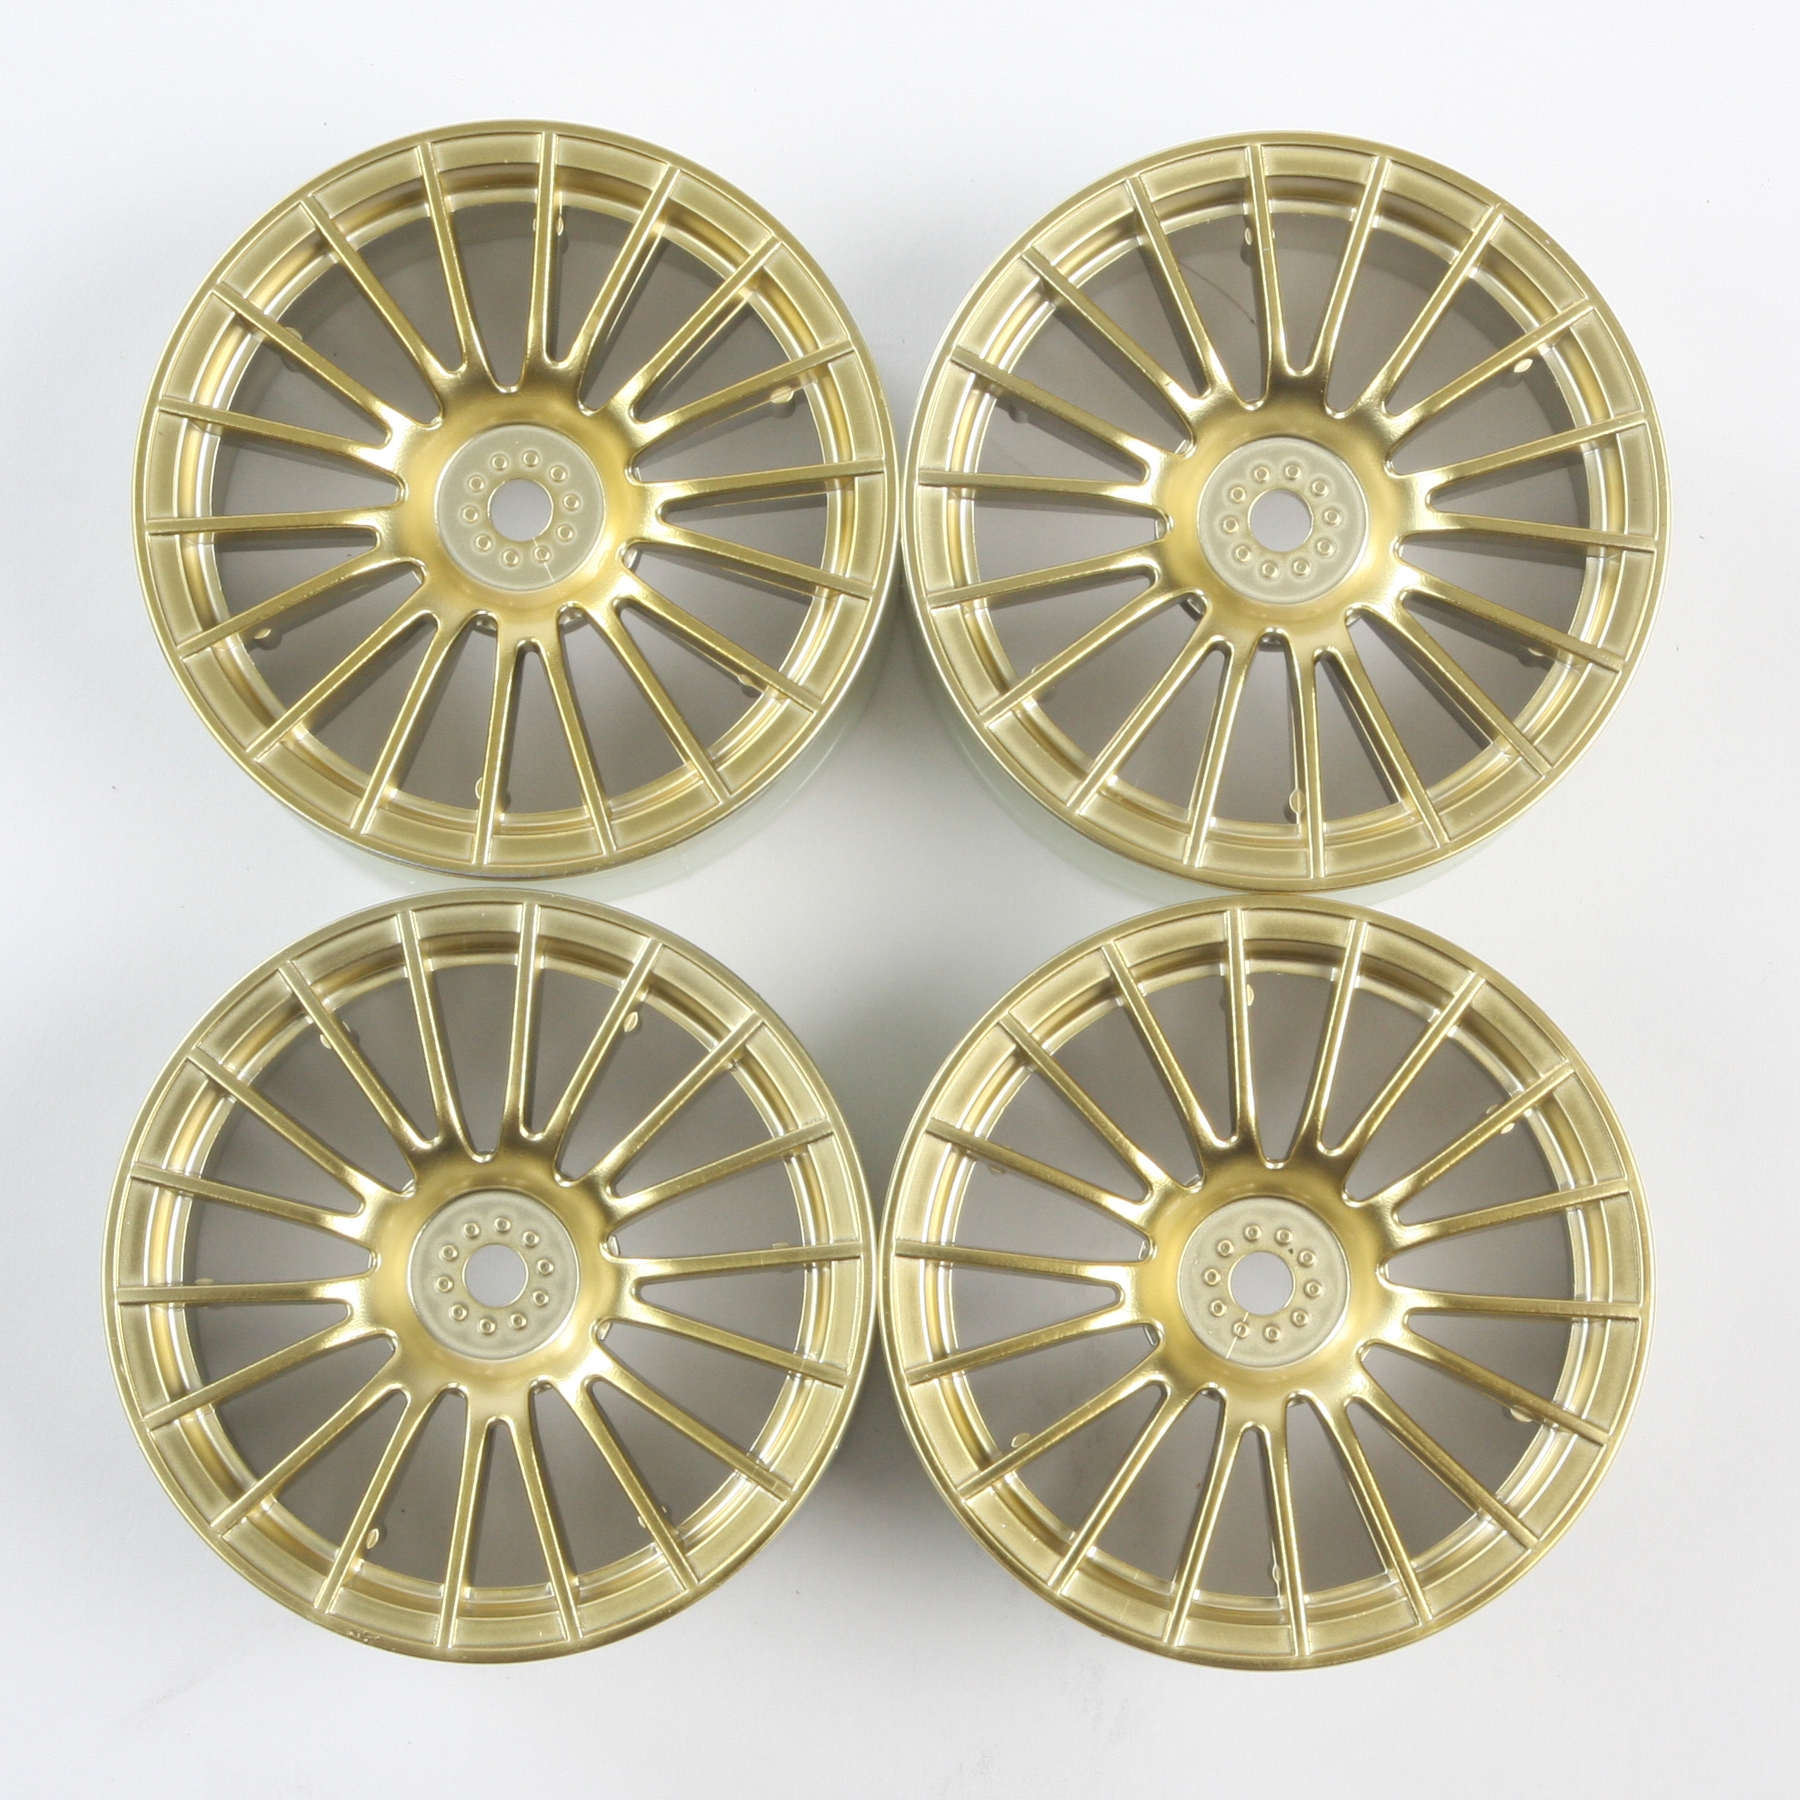 Rc 24Mm 18-Spoke Wheels-4Pcs